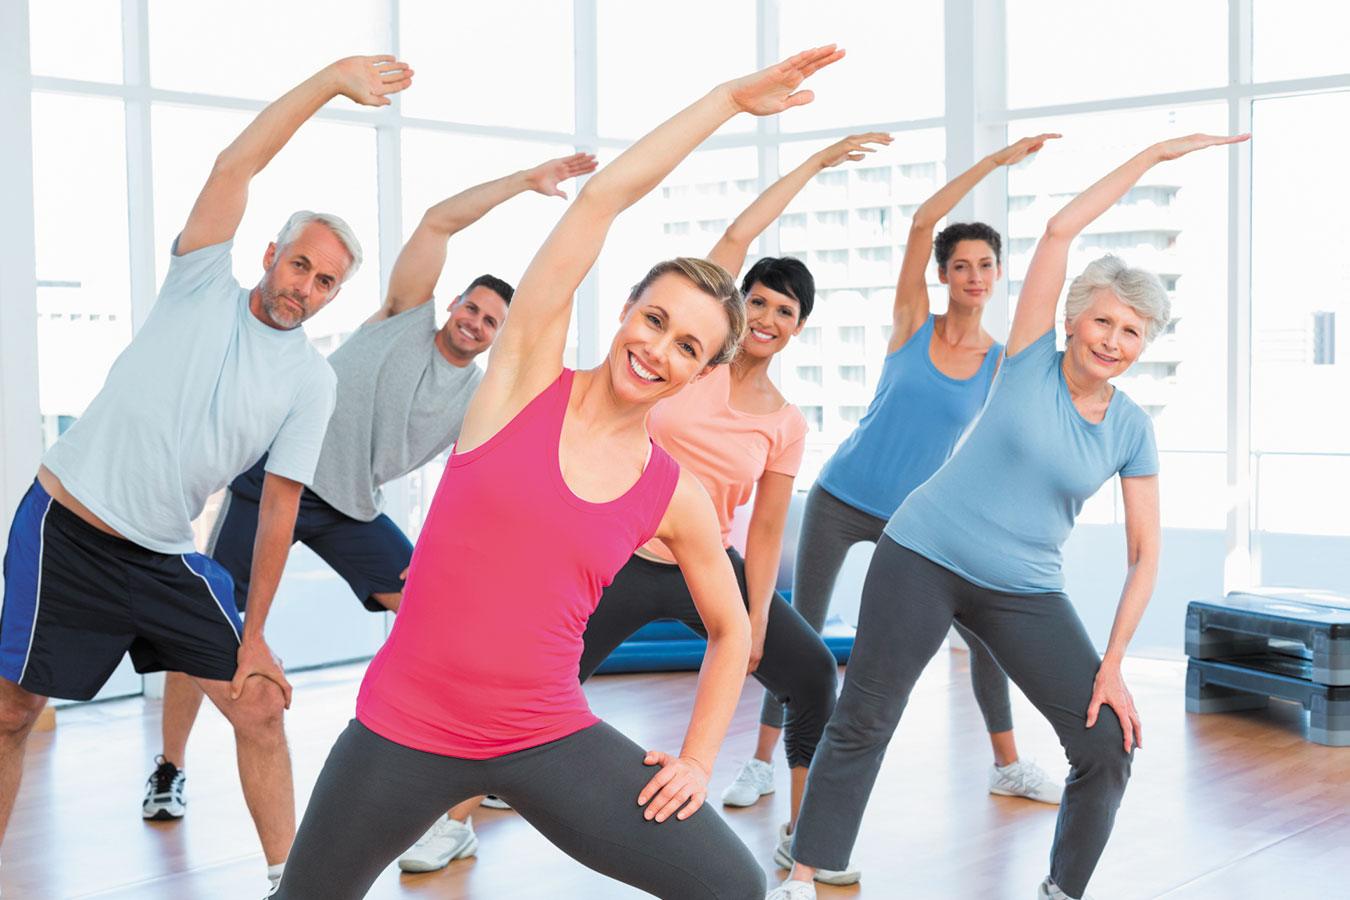 【Dr Claudia Ng, BSc, DC - 7 Benefits of Doing Exercises】